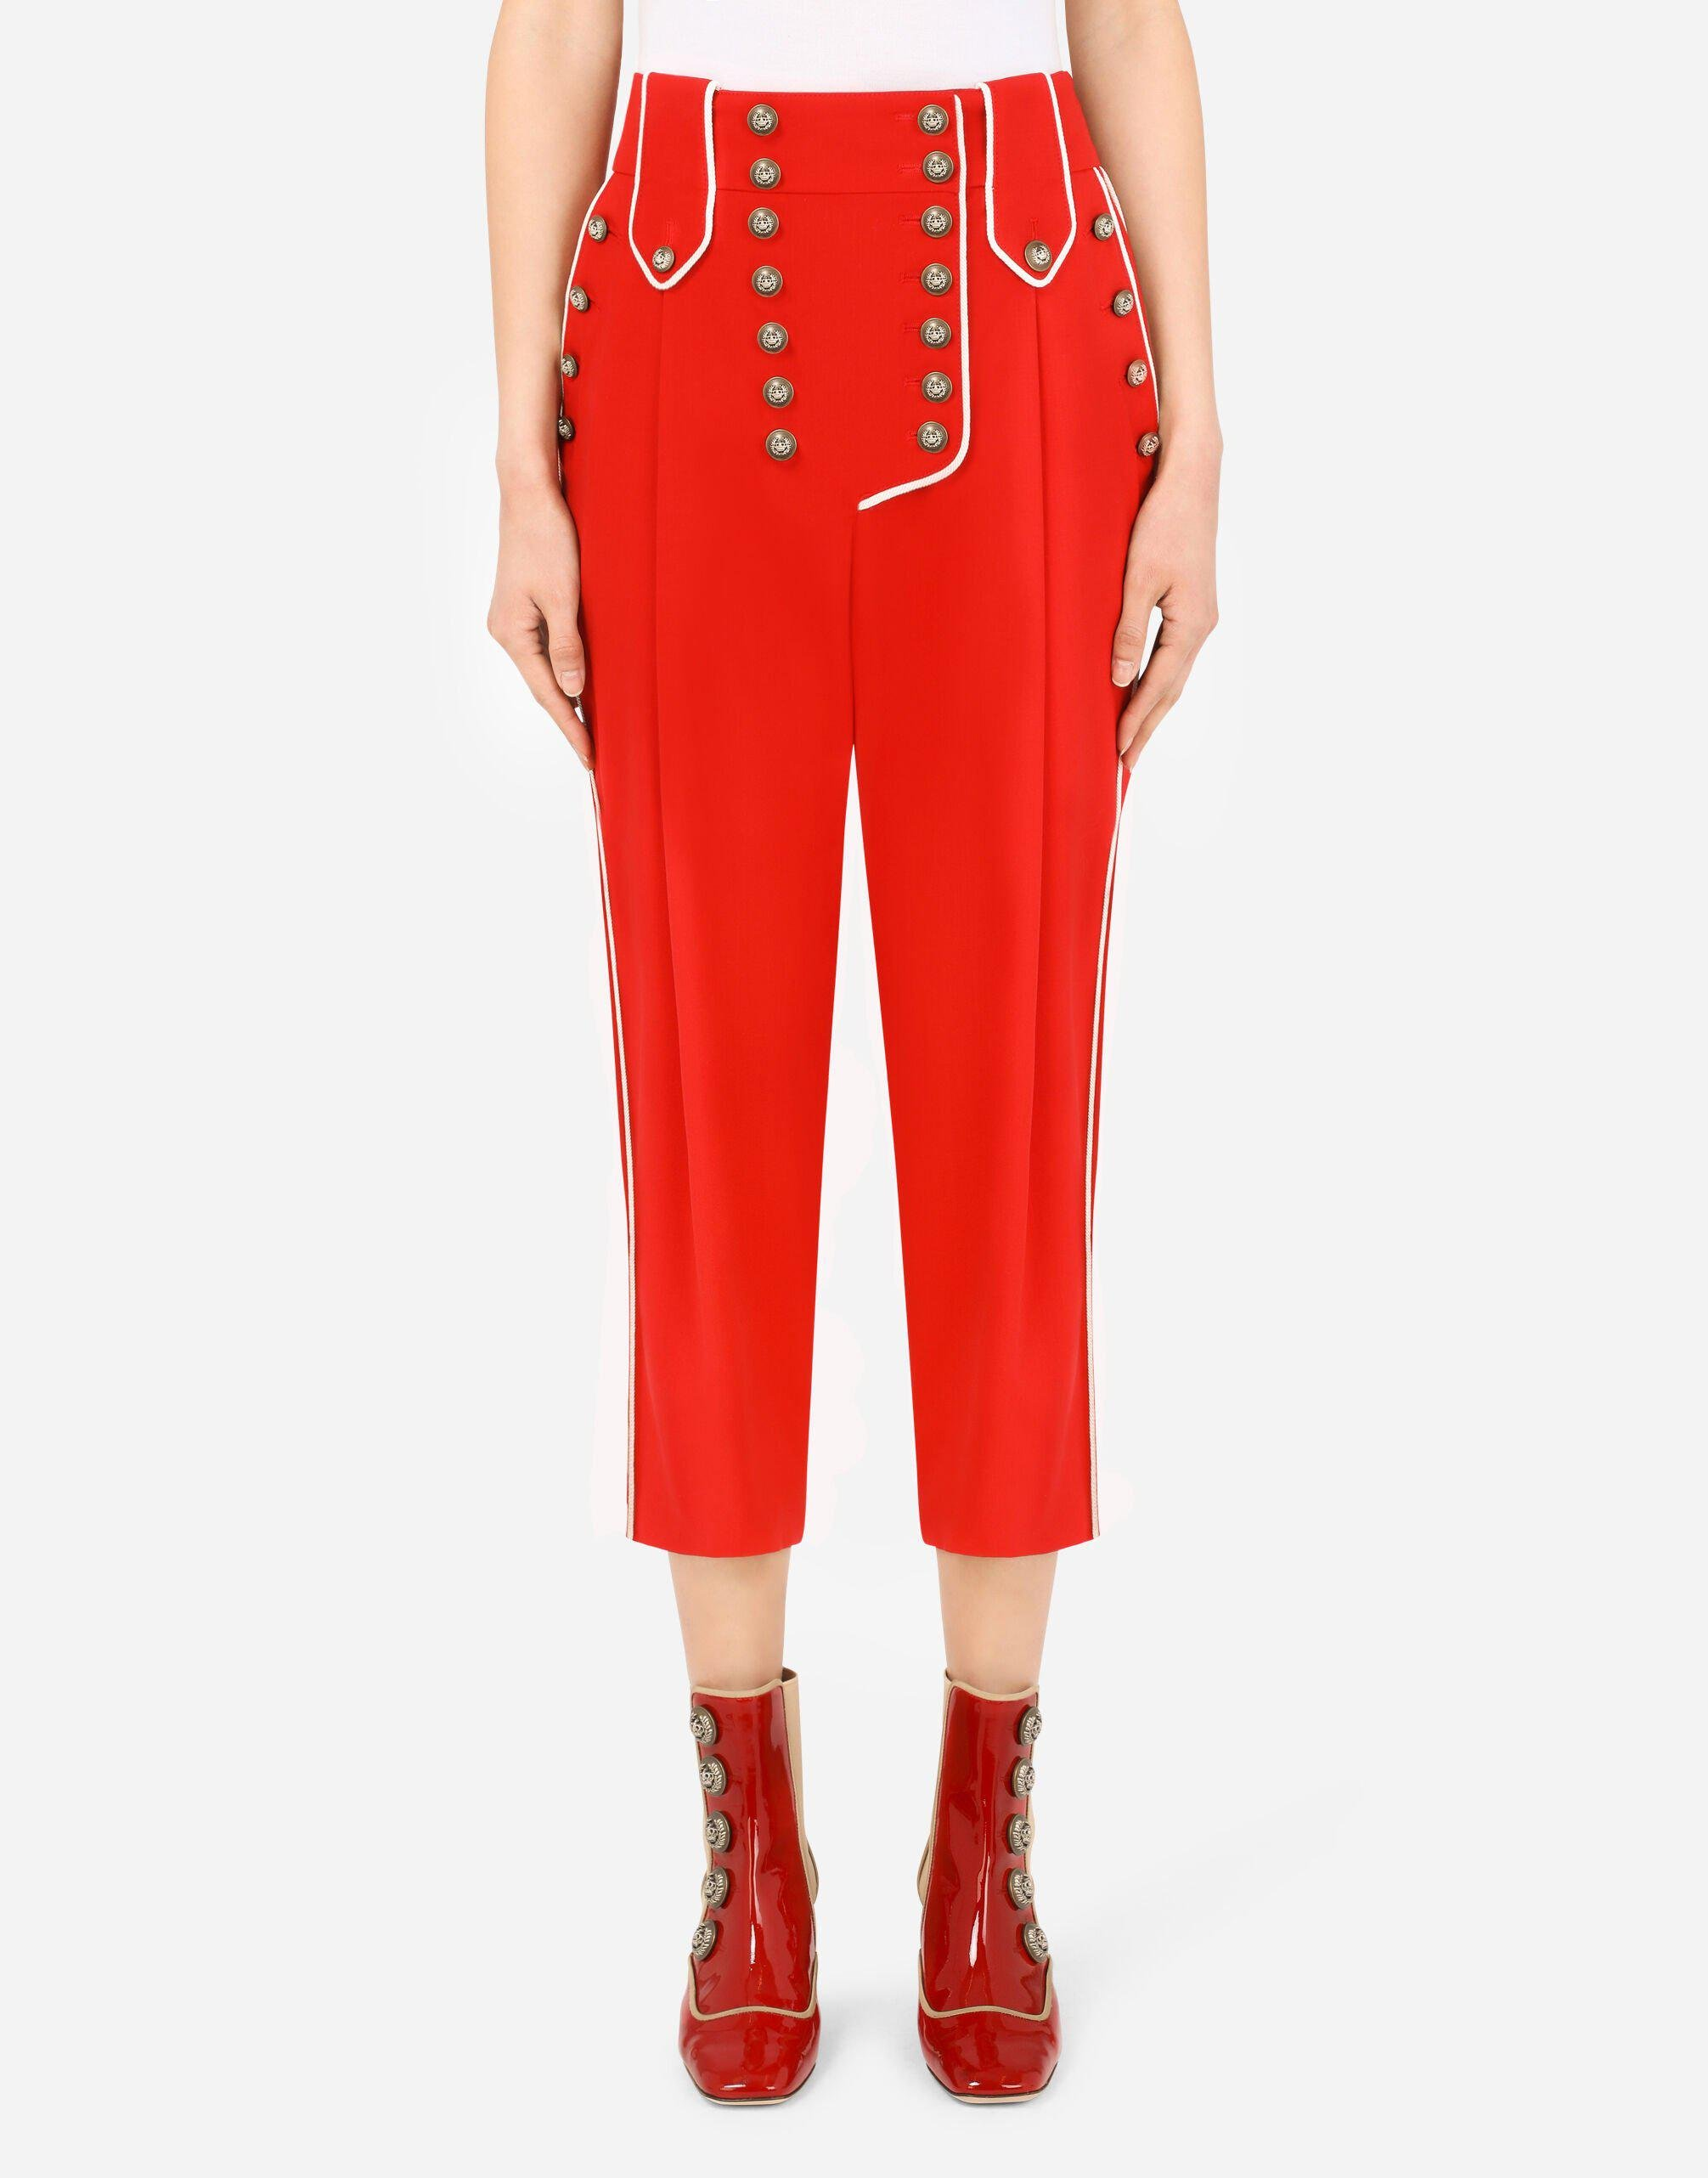 High-waisted woolen pants with heraldic buttons